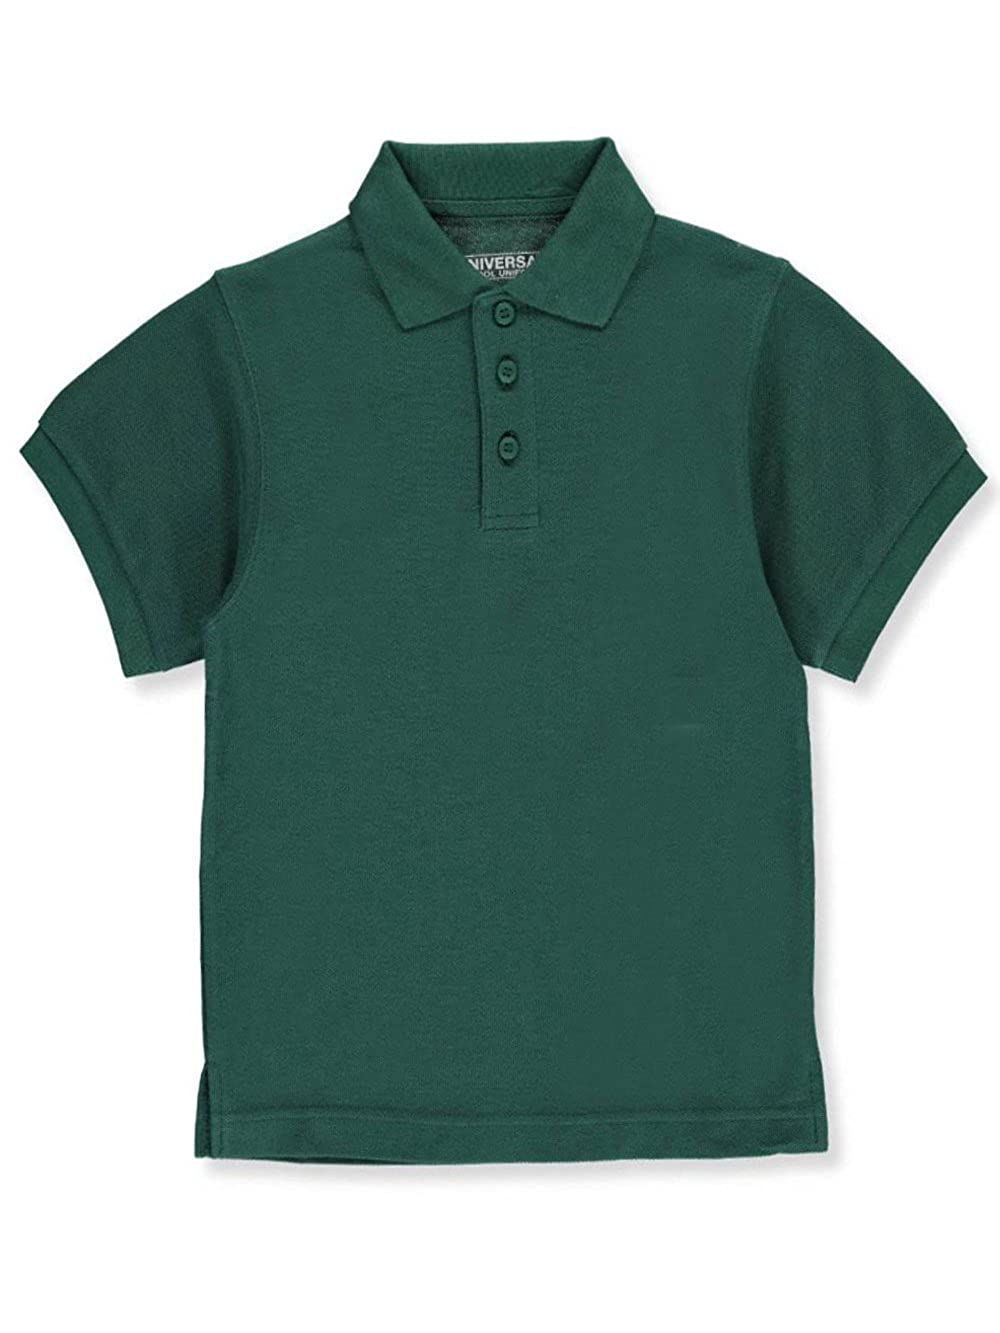 Universal School Uniforms Children's Short Sleeve Pique Polo Shirt - Many Colors Available